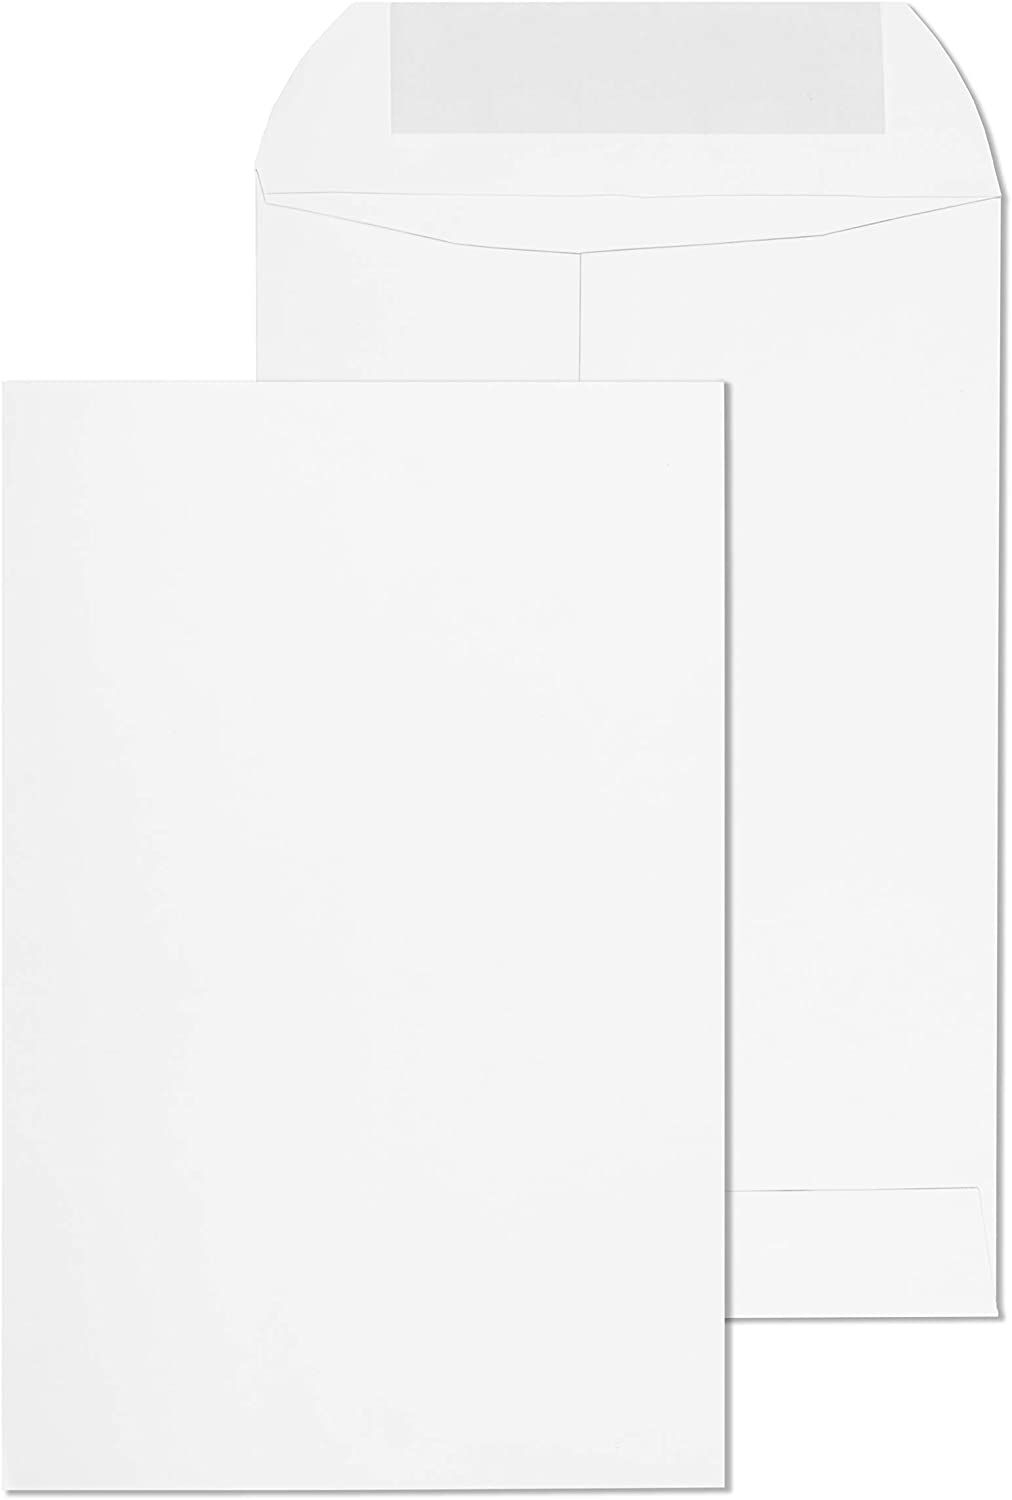 EnDoc 6x9 Open End Self Seal Envelopes - Bright White 28lb Heavyweight Paper 6 x 9 Inches Envelope for Home, Mailing Documents, Office, Business, Legal or School - 250 Pack